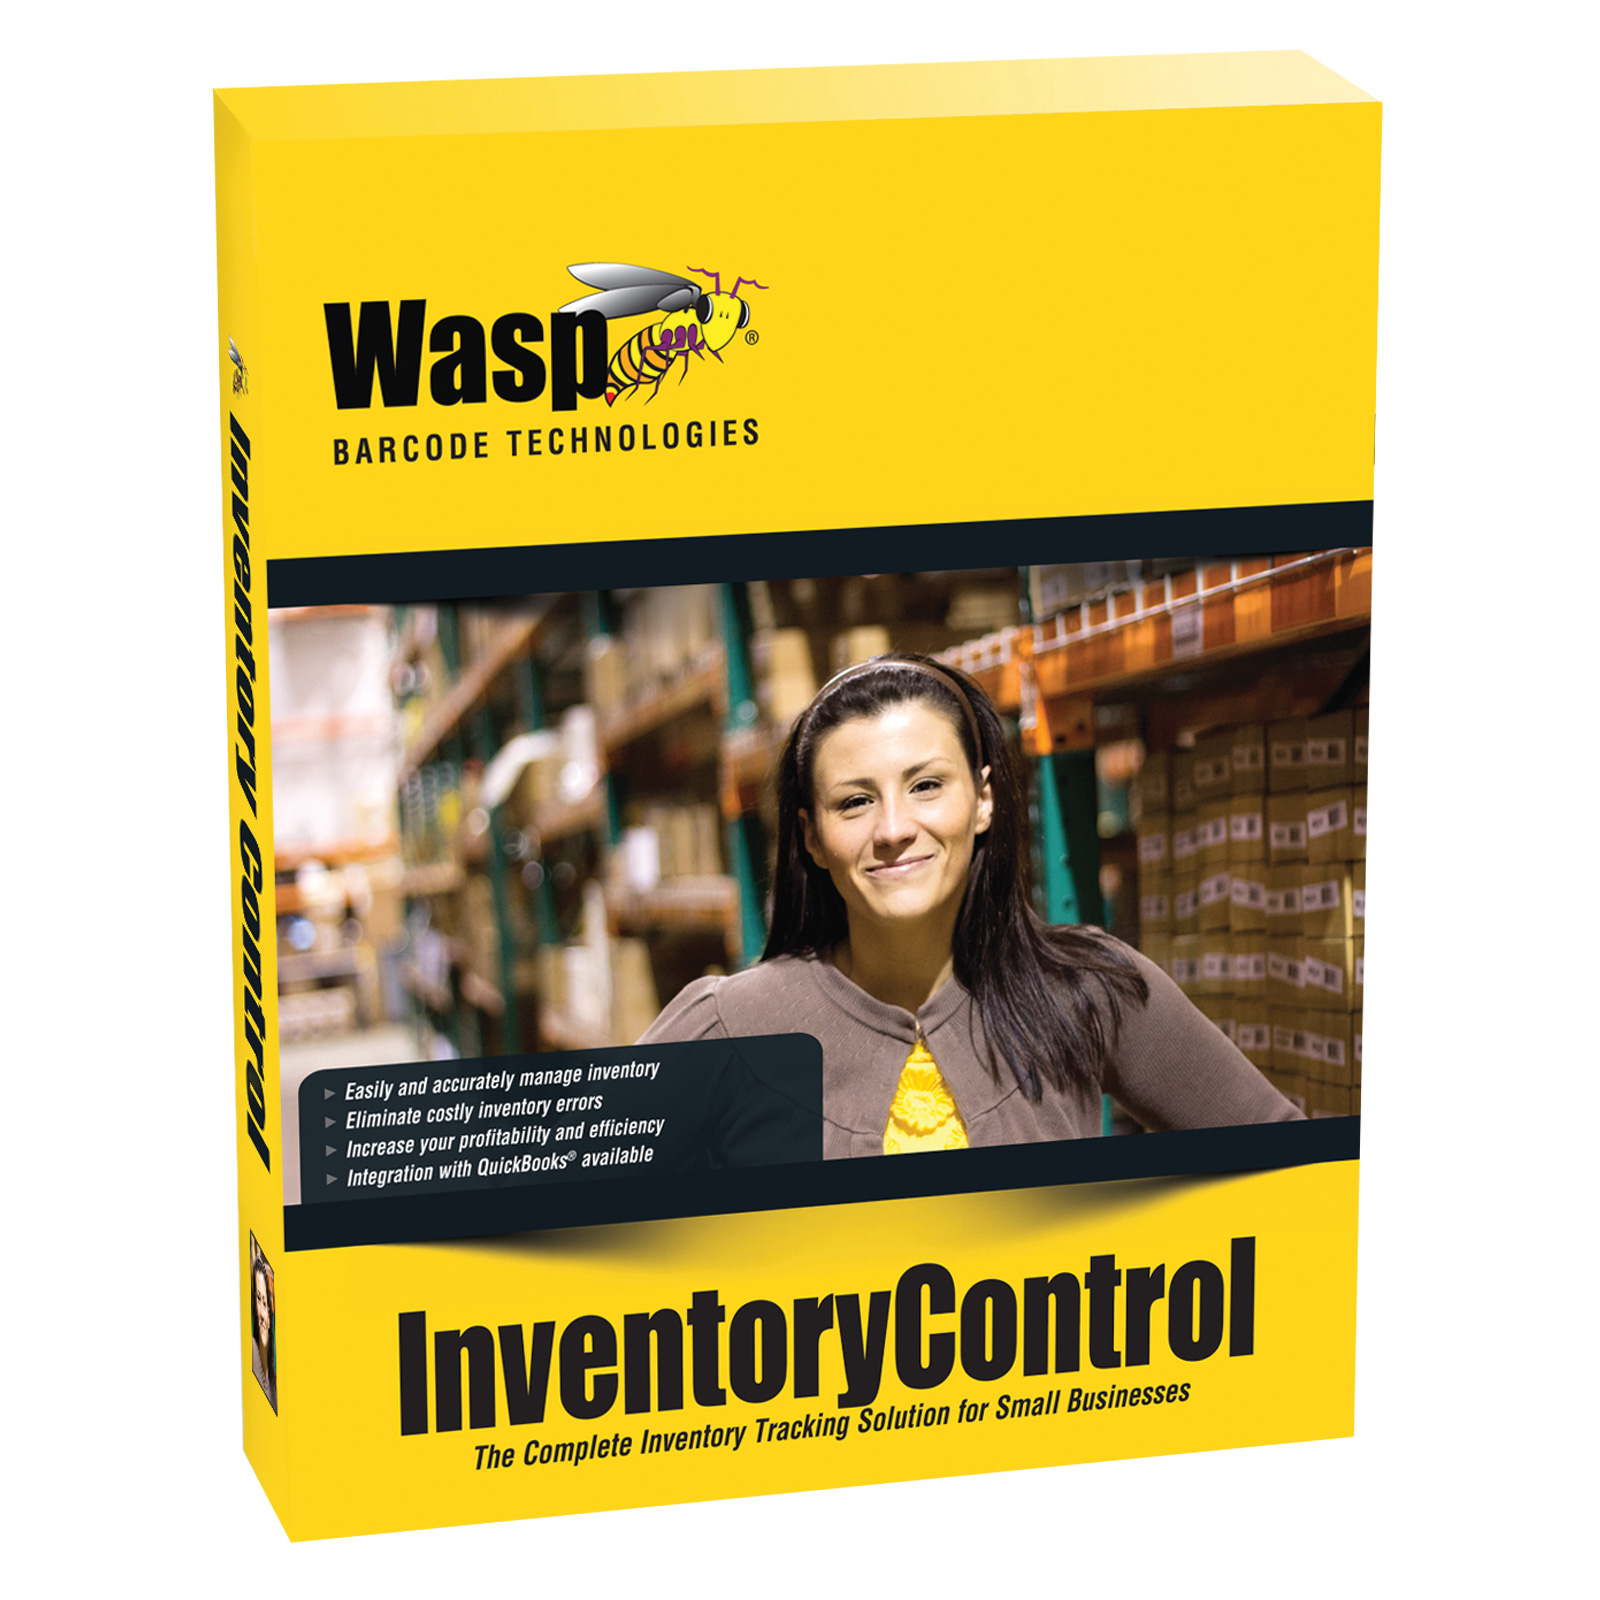 Image result for wasp inventory control image